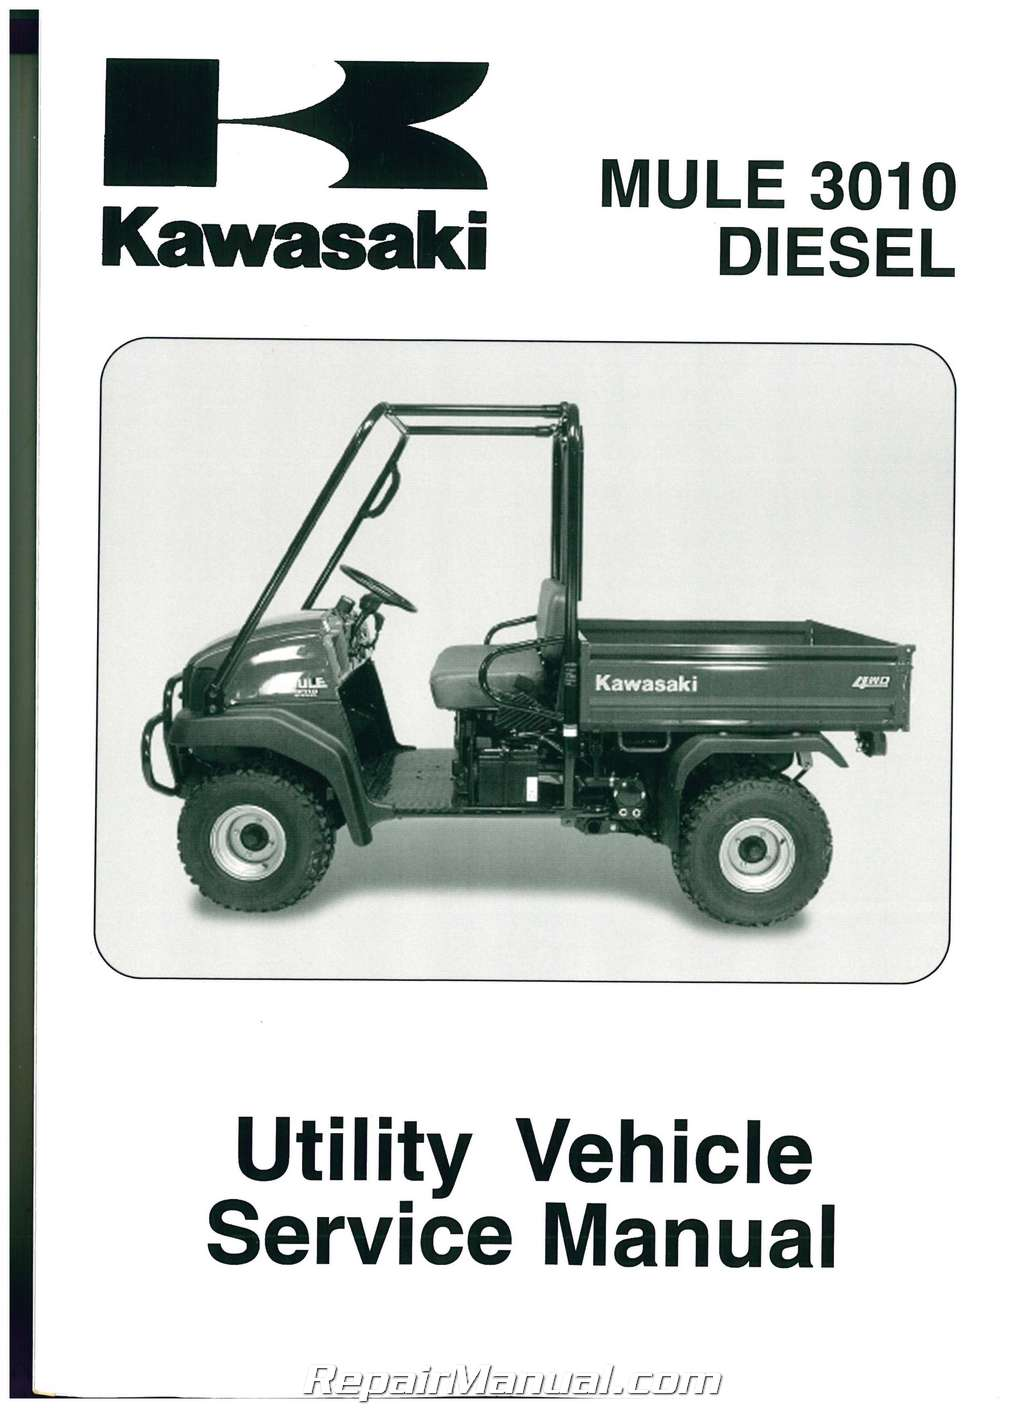 Kawasaki Mule 3010 Diesel Diagram Custom Wiring 2003 2007 Kaf950 Side By Service Manual Rh Repairmanual Com Used Mules On Ebay